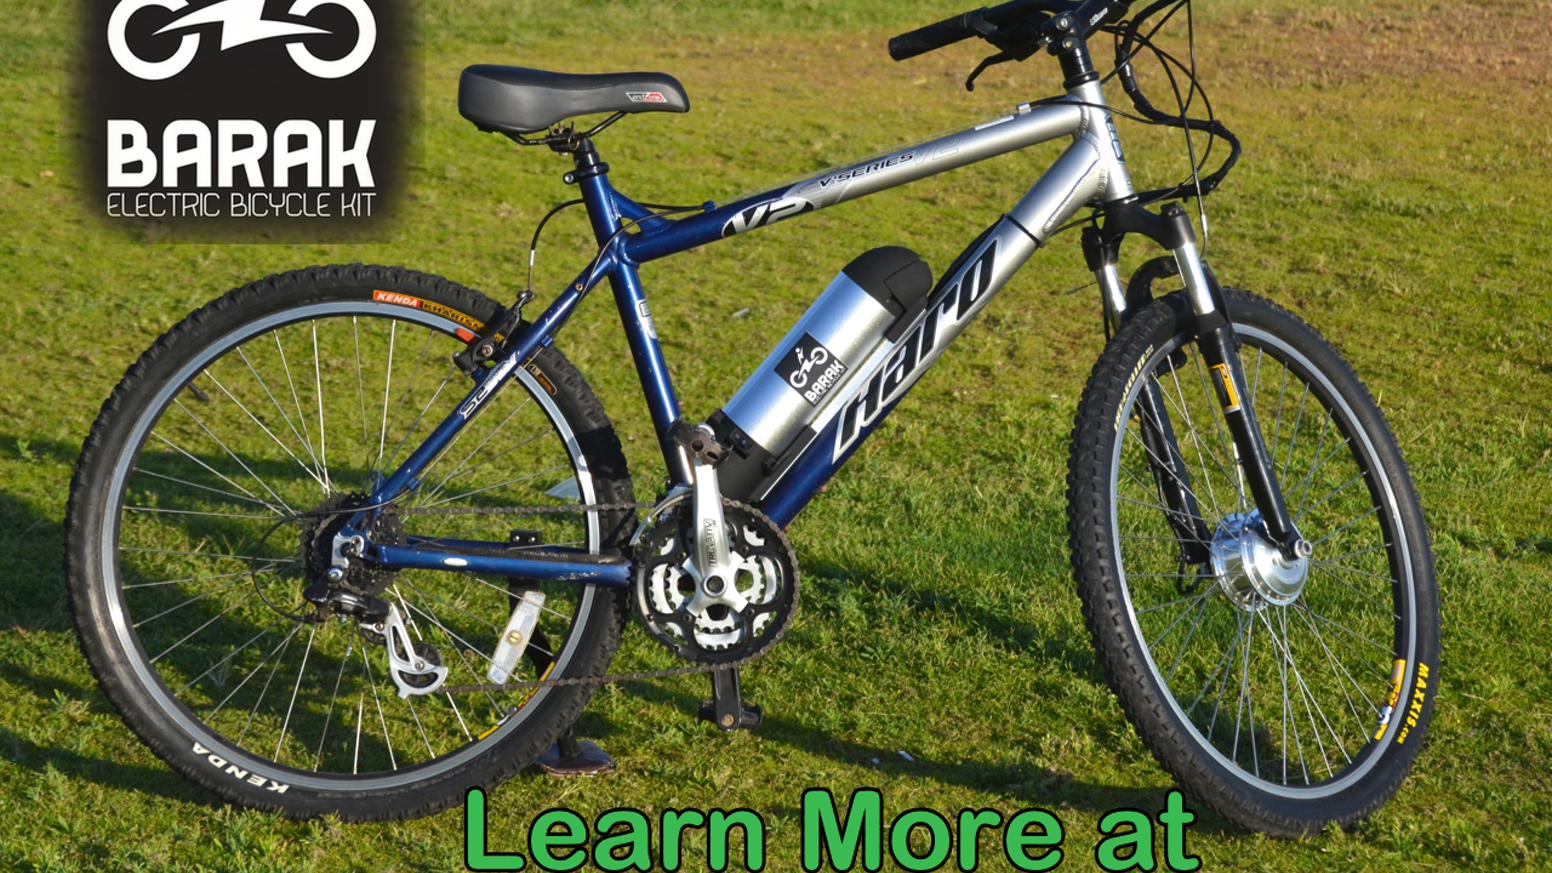 Barak Electric Bicycle Conversion Kit - Electrify Your Bike